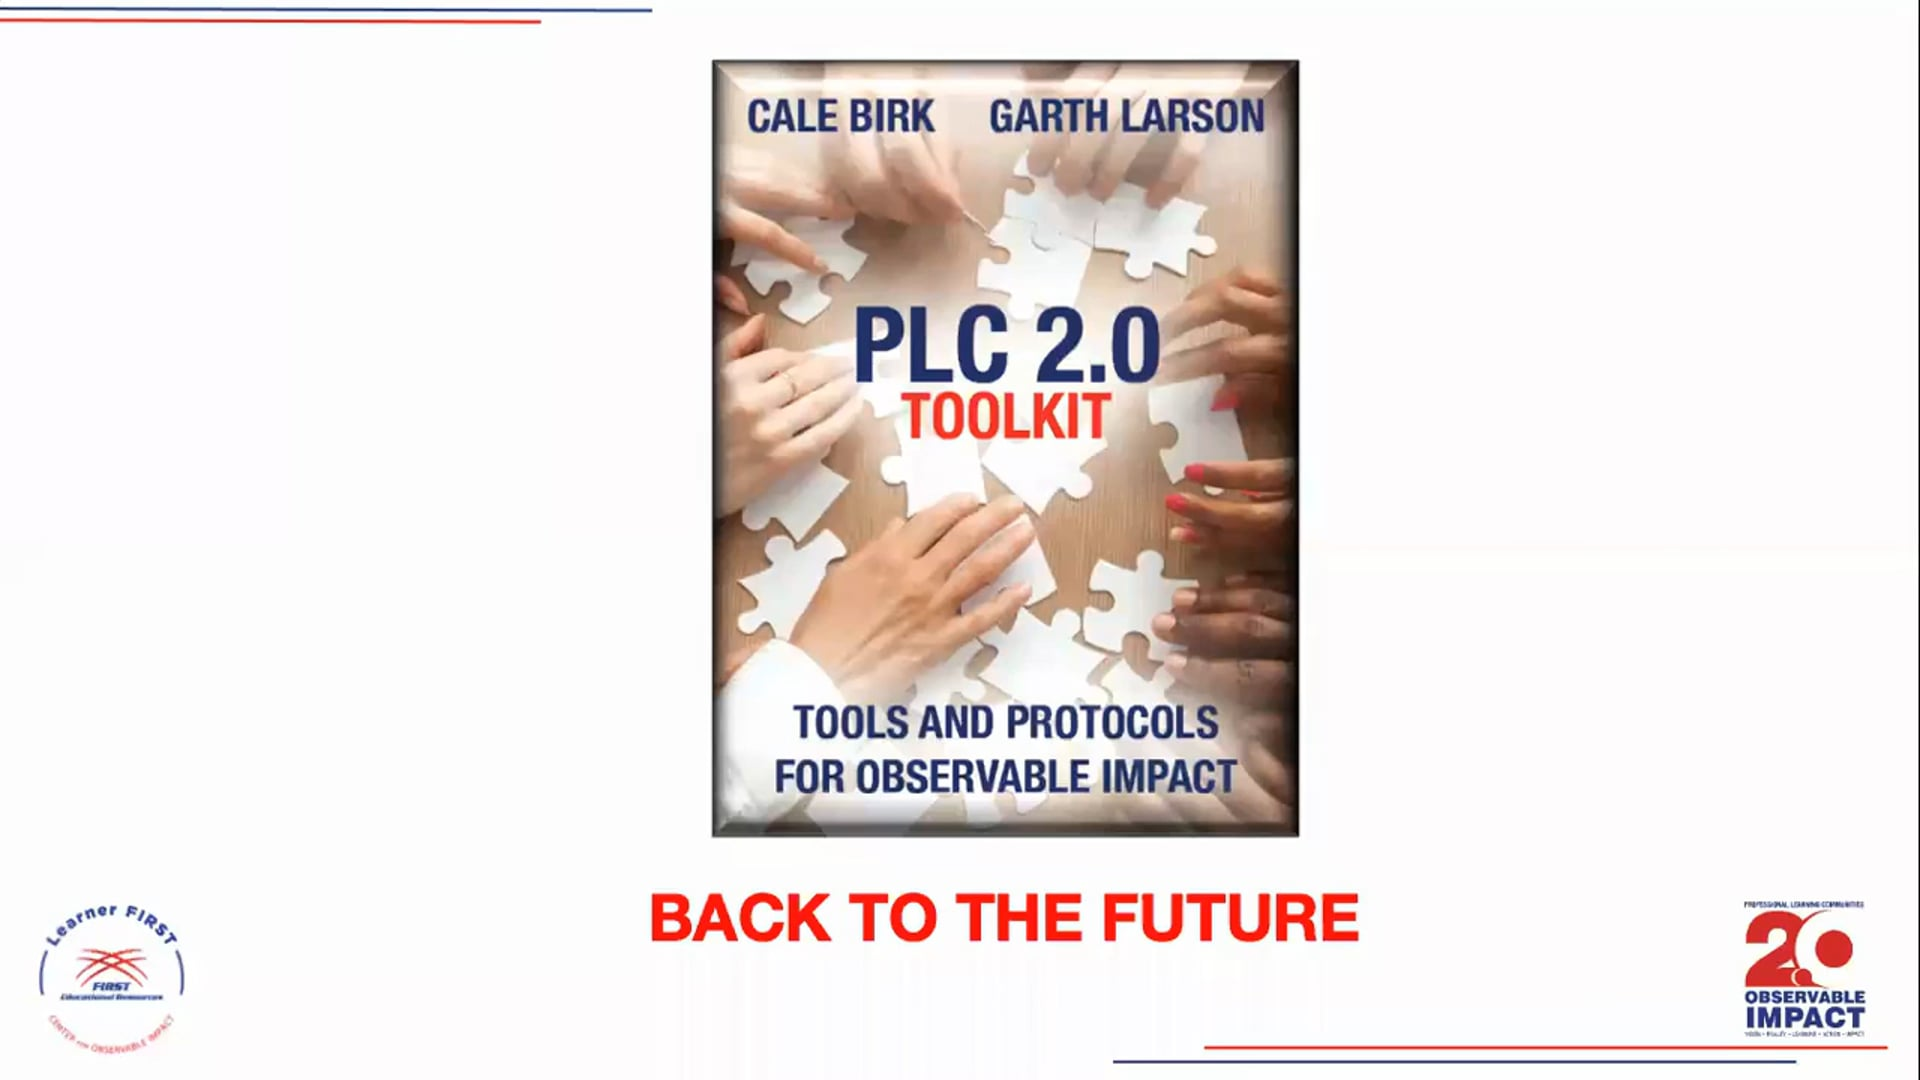 PLC 2.0 - Back to the Future